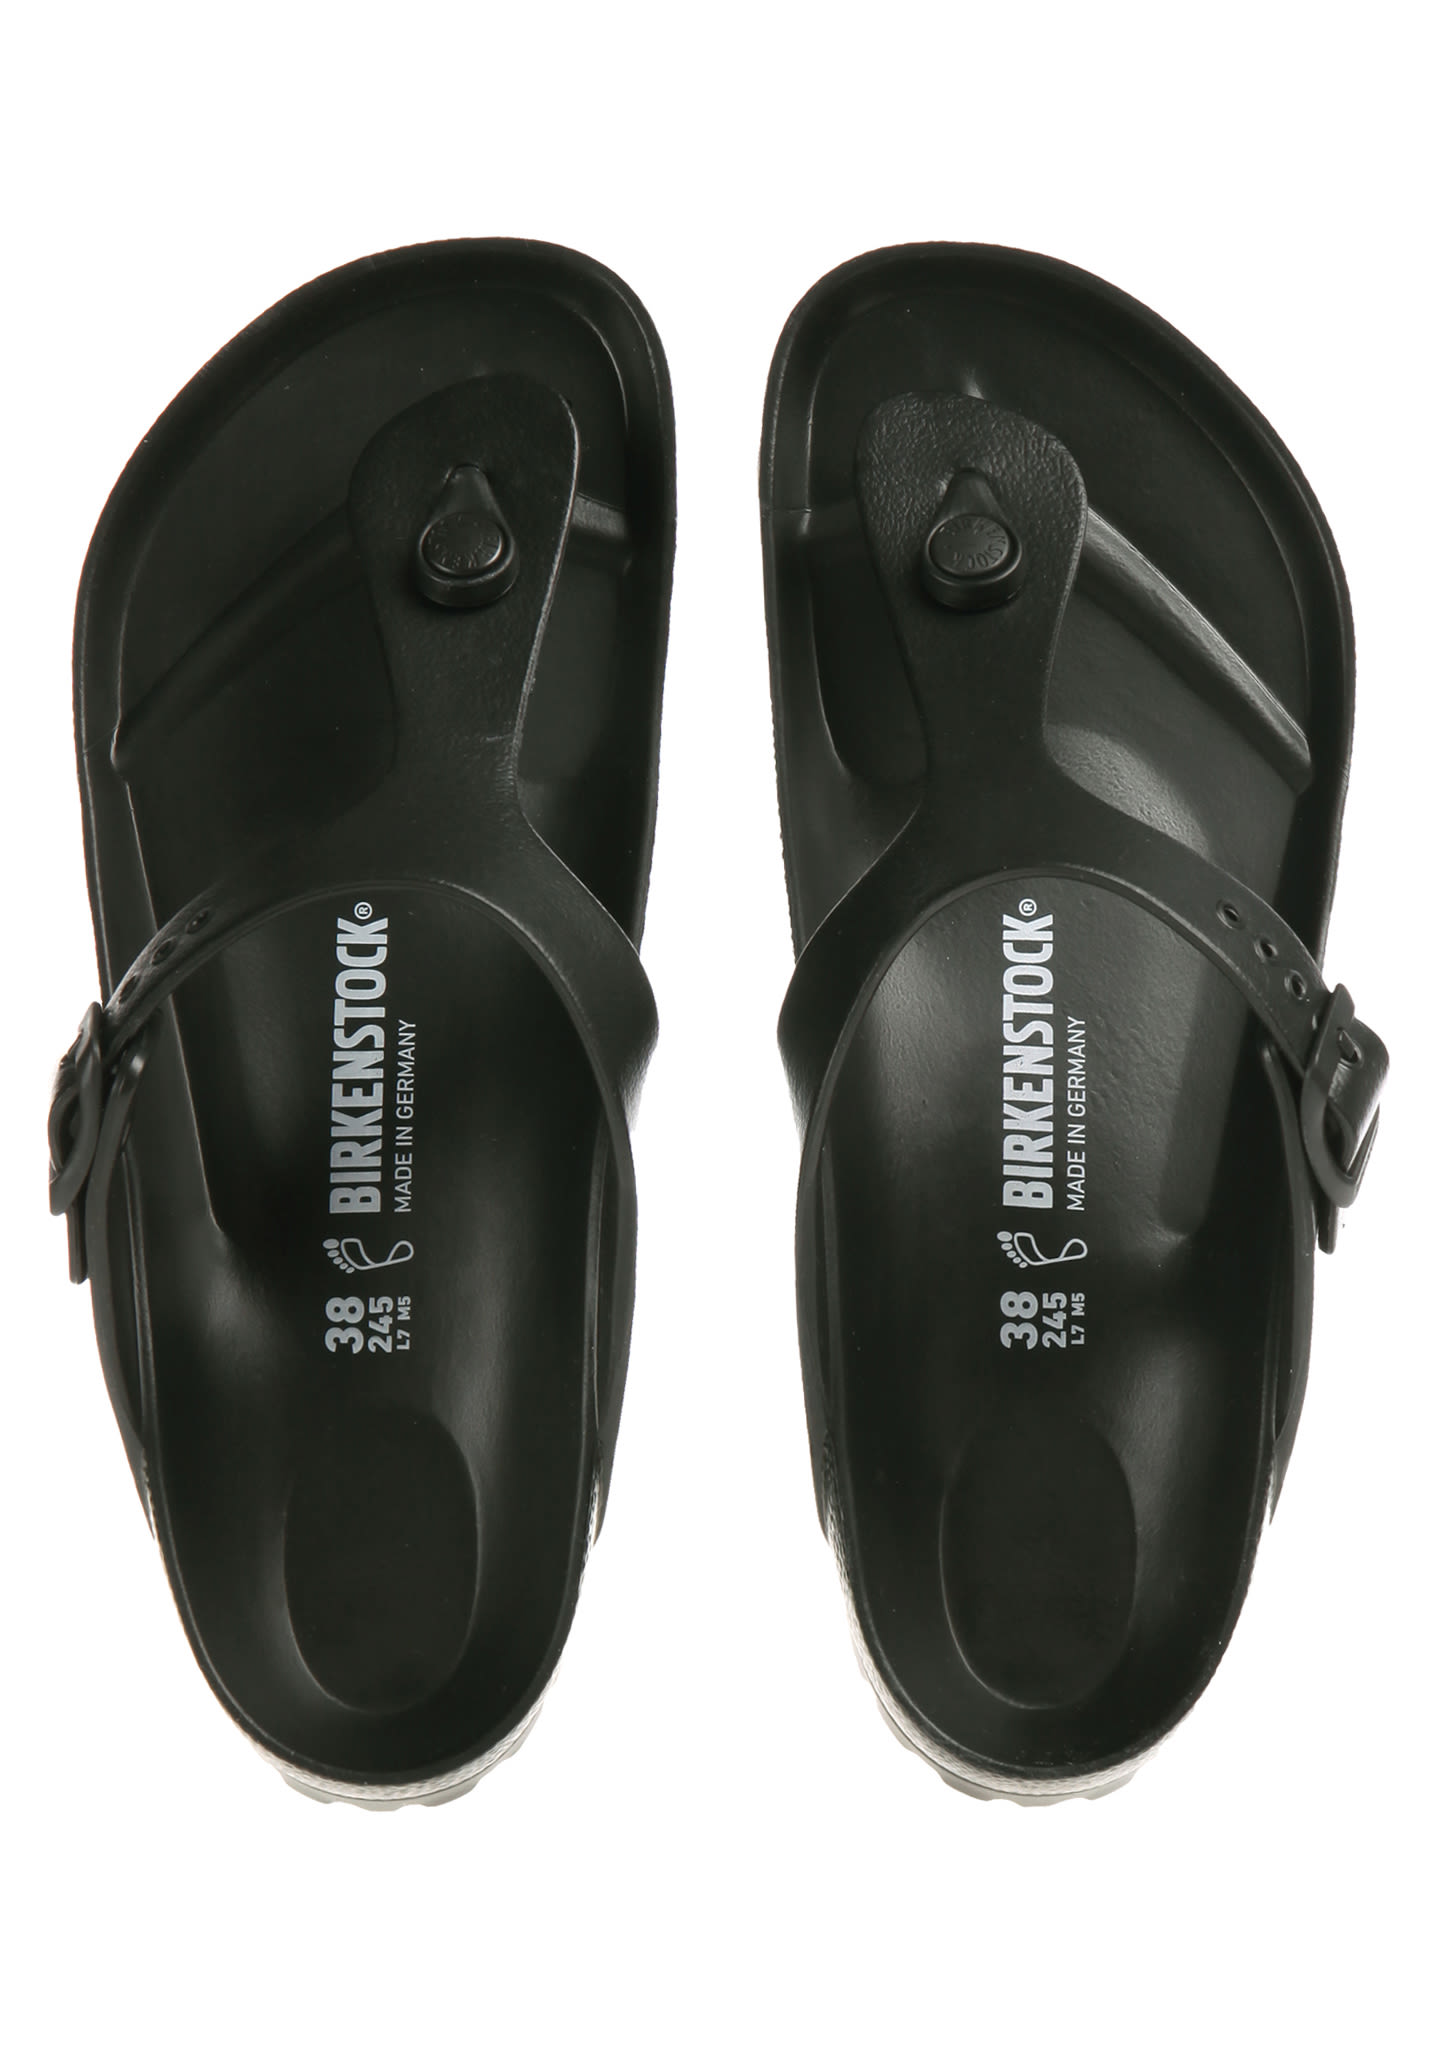 58a11ad42c55 Birkenstock Gizeh EVA - Sandals for Women - Black - Planet Sports